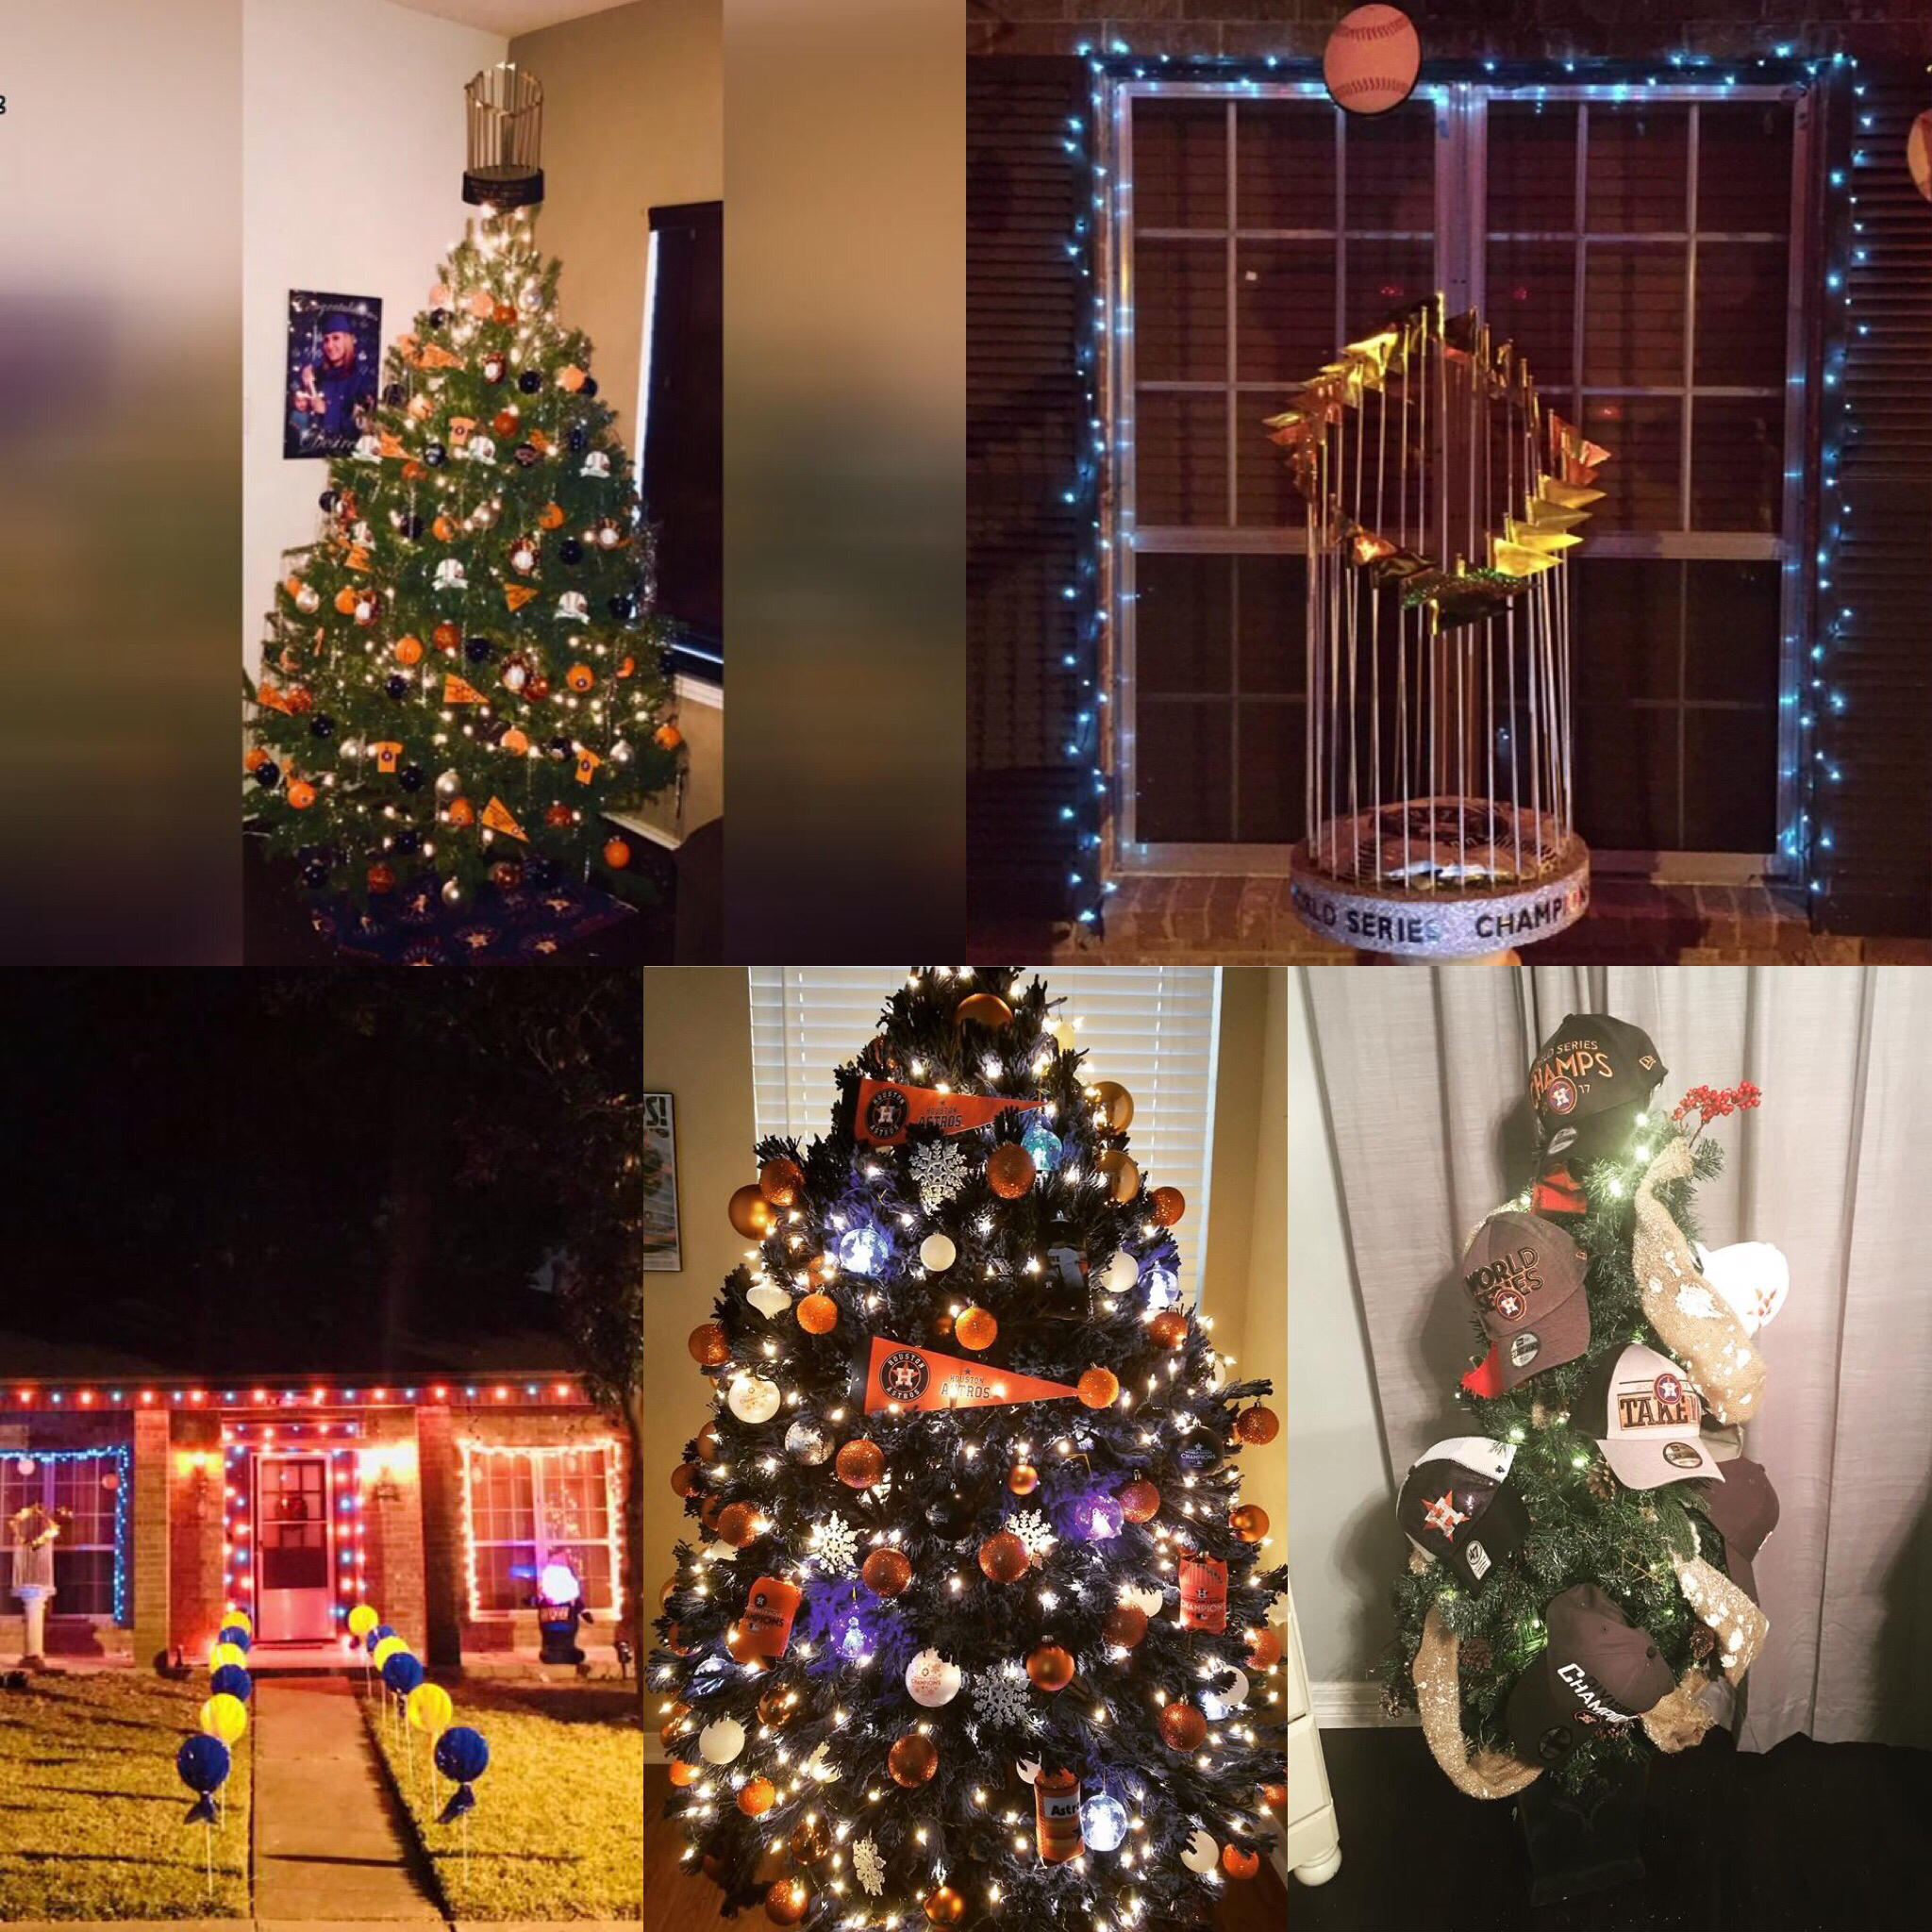 Home run holiday fans share astros themed christmas for Home decorations fan